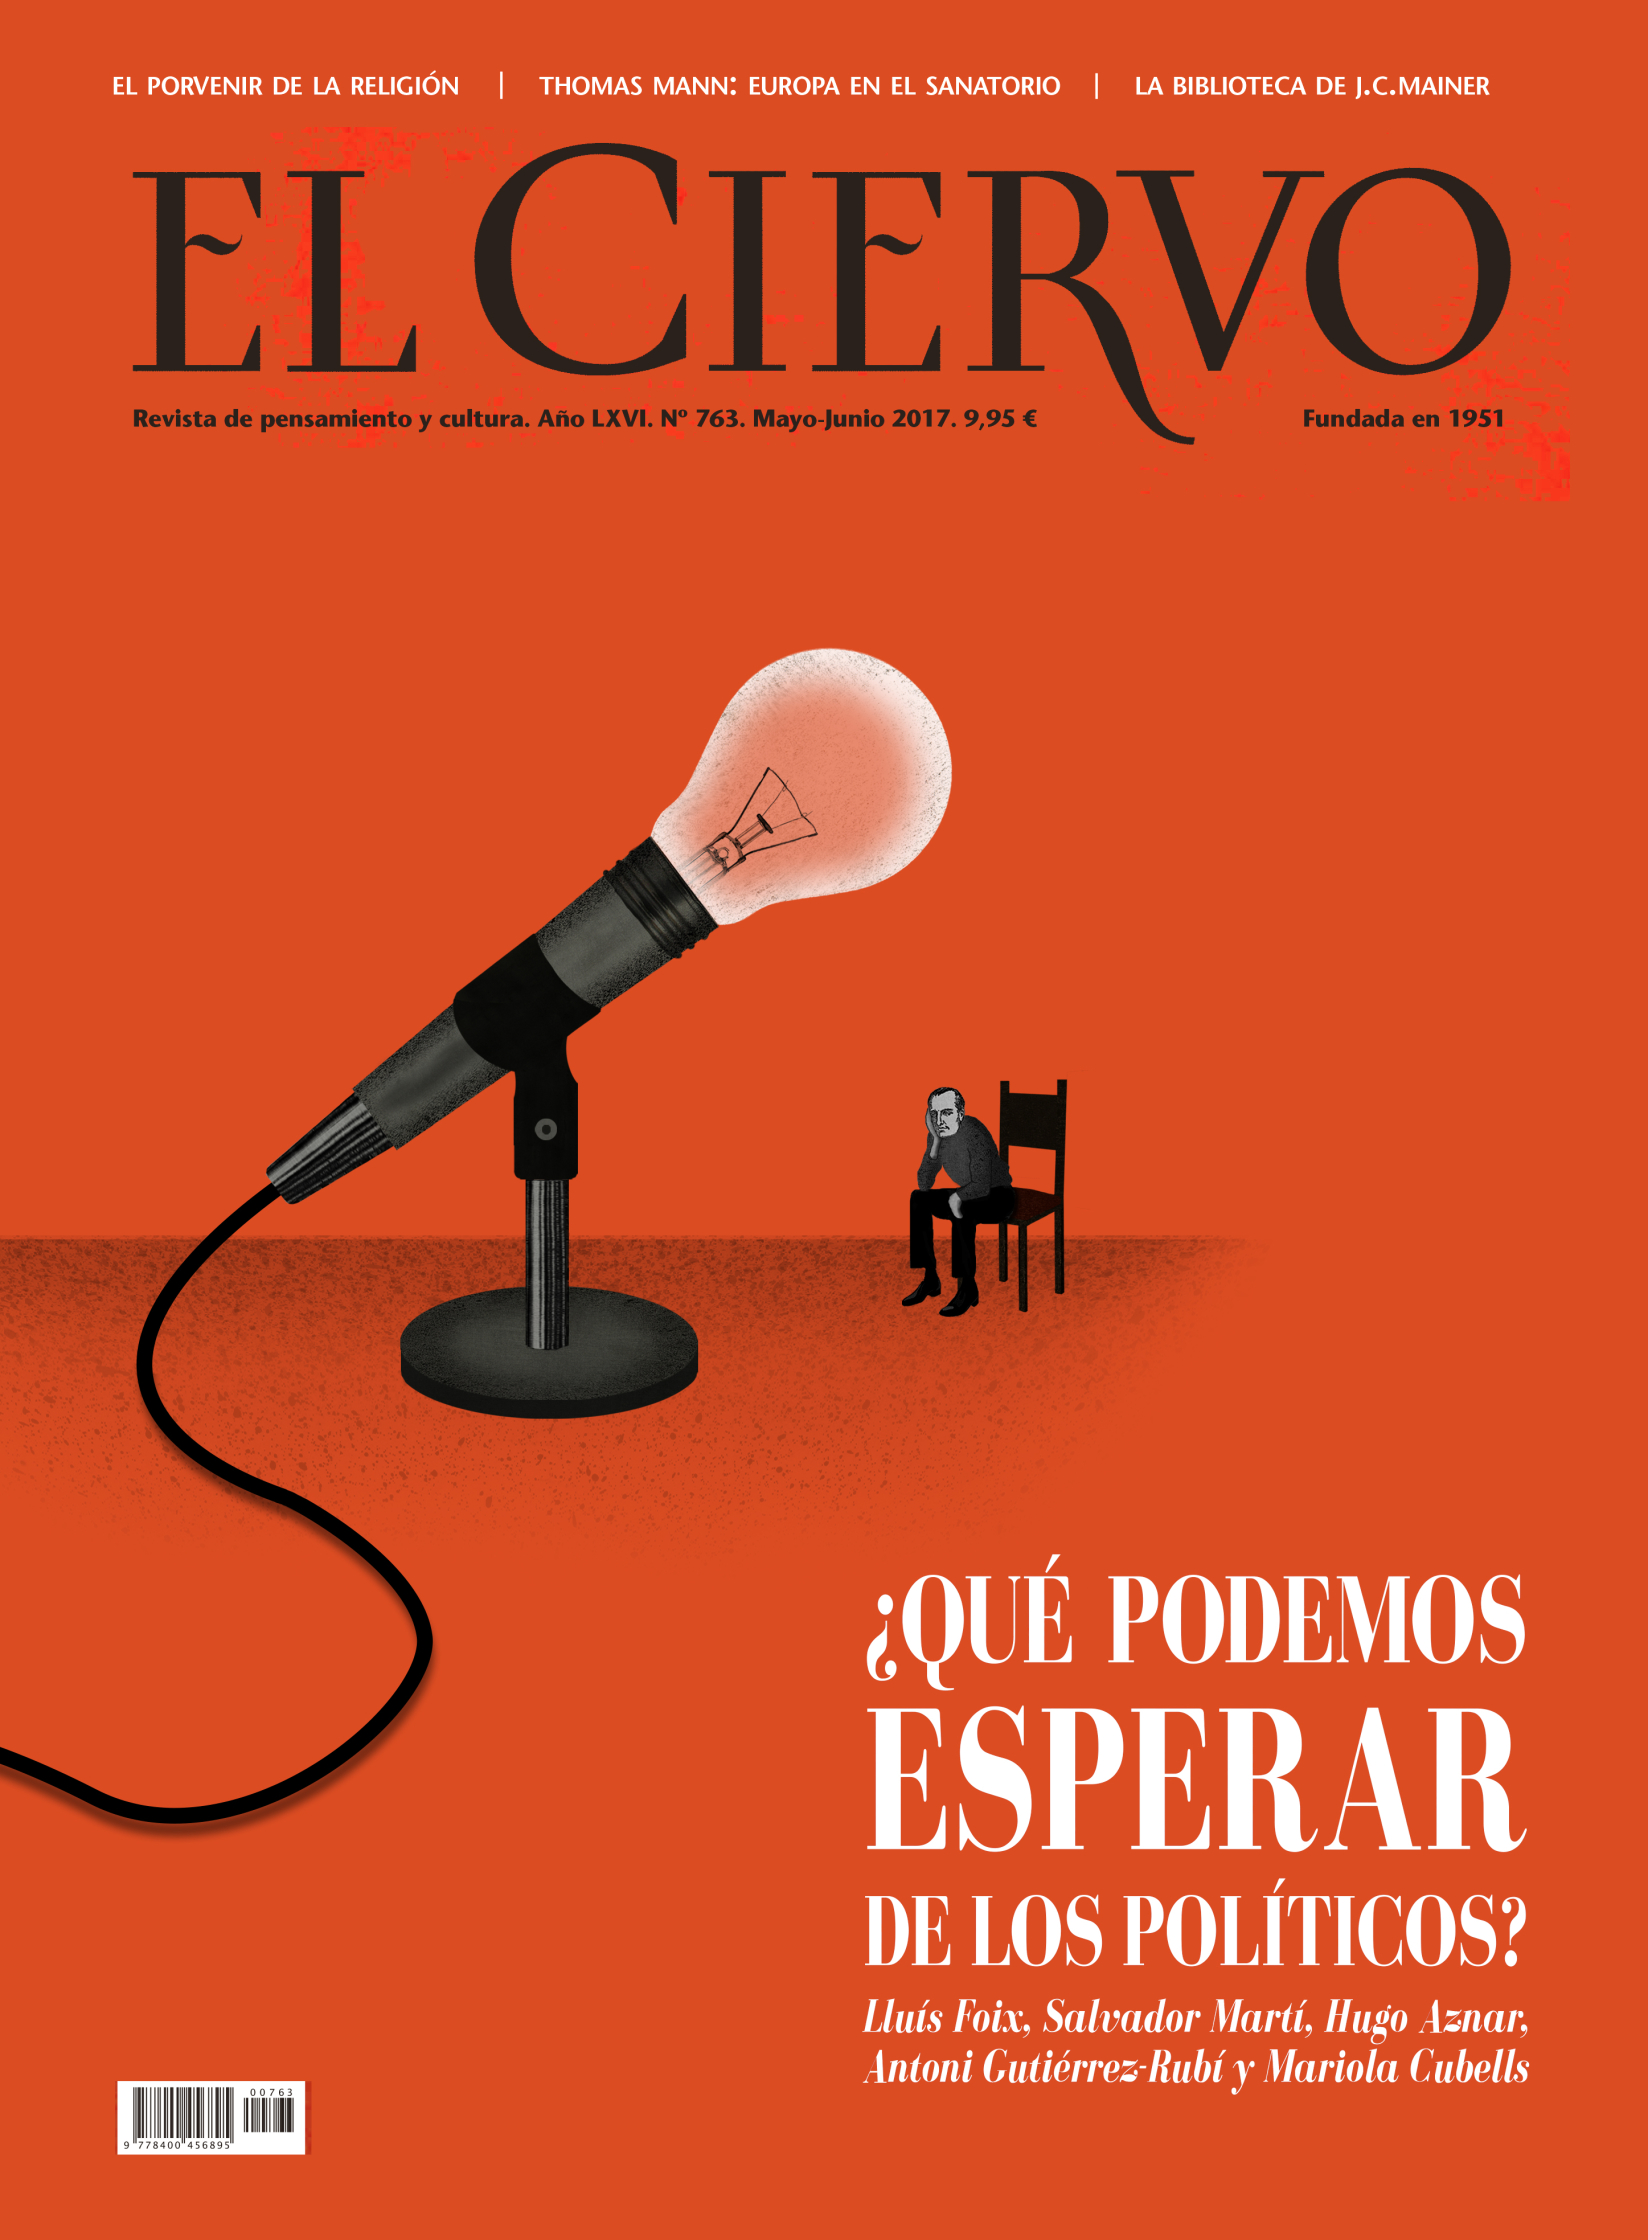 Cover for El Ciervo Magazine (What can we expect from politicians).jpg